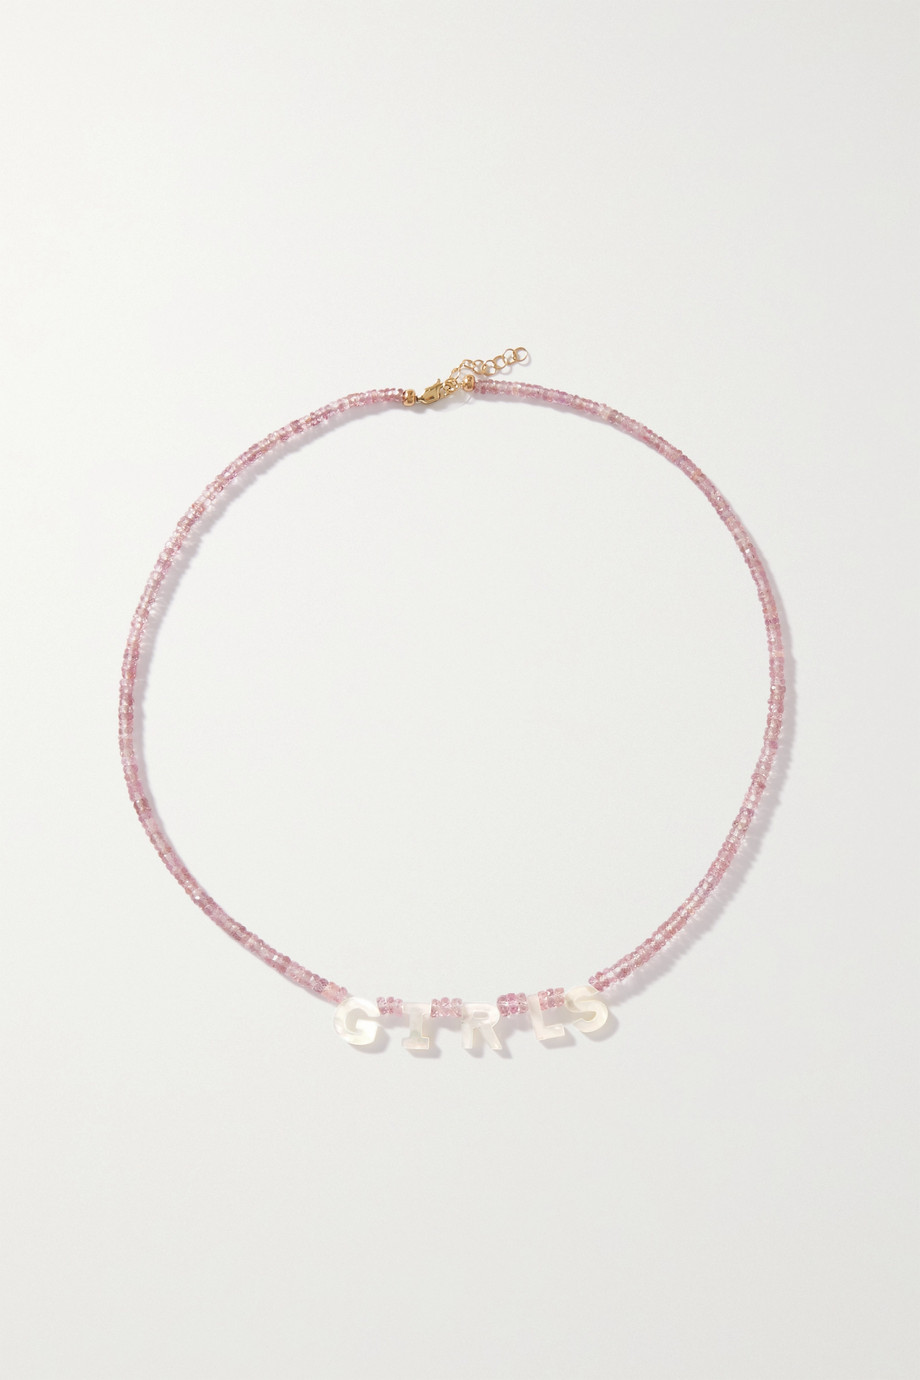 Roxanne First Girls 14-karat gold, sapphire and mother-of-pearl necklace